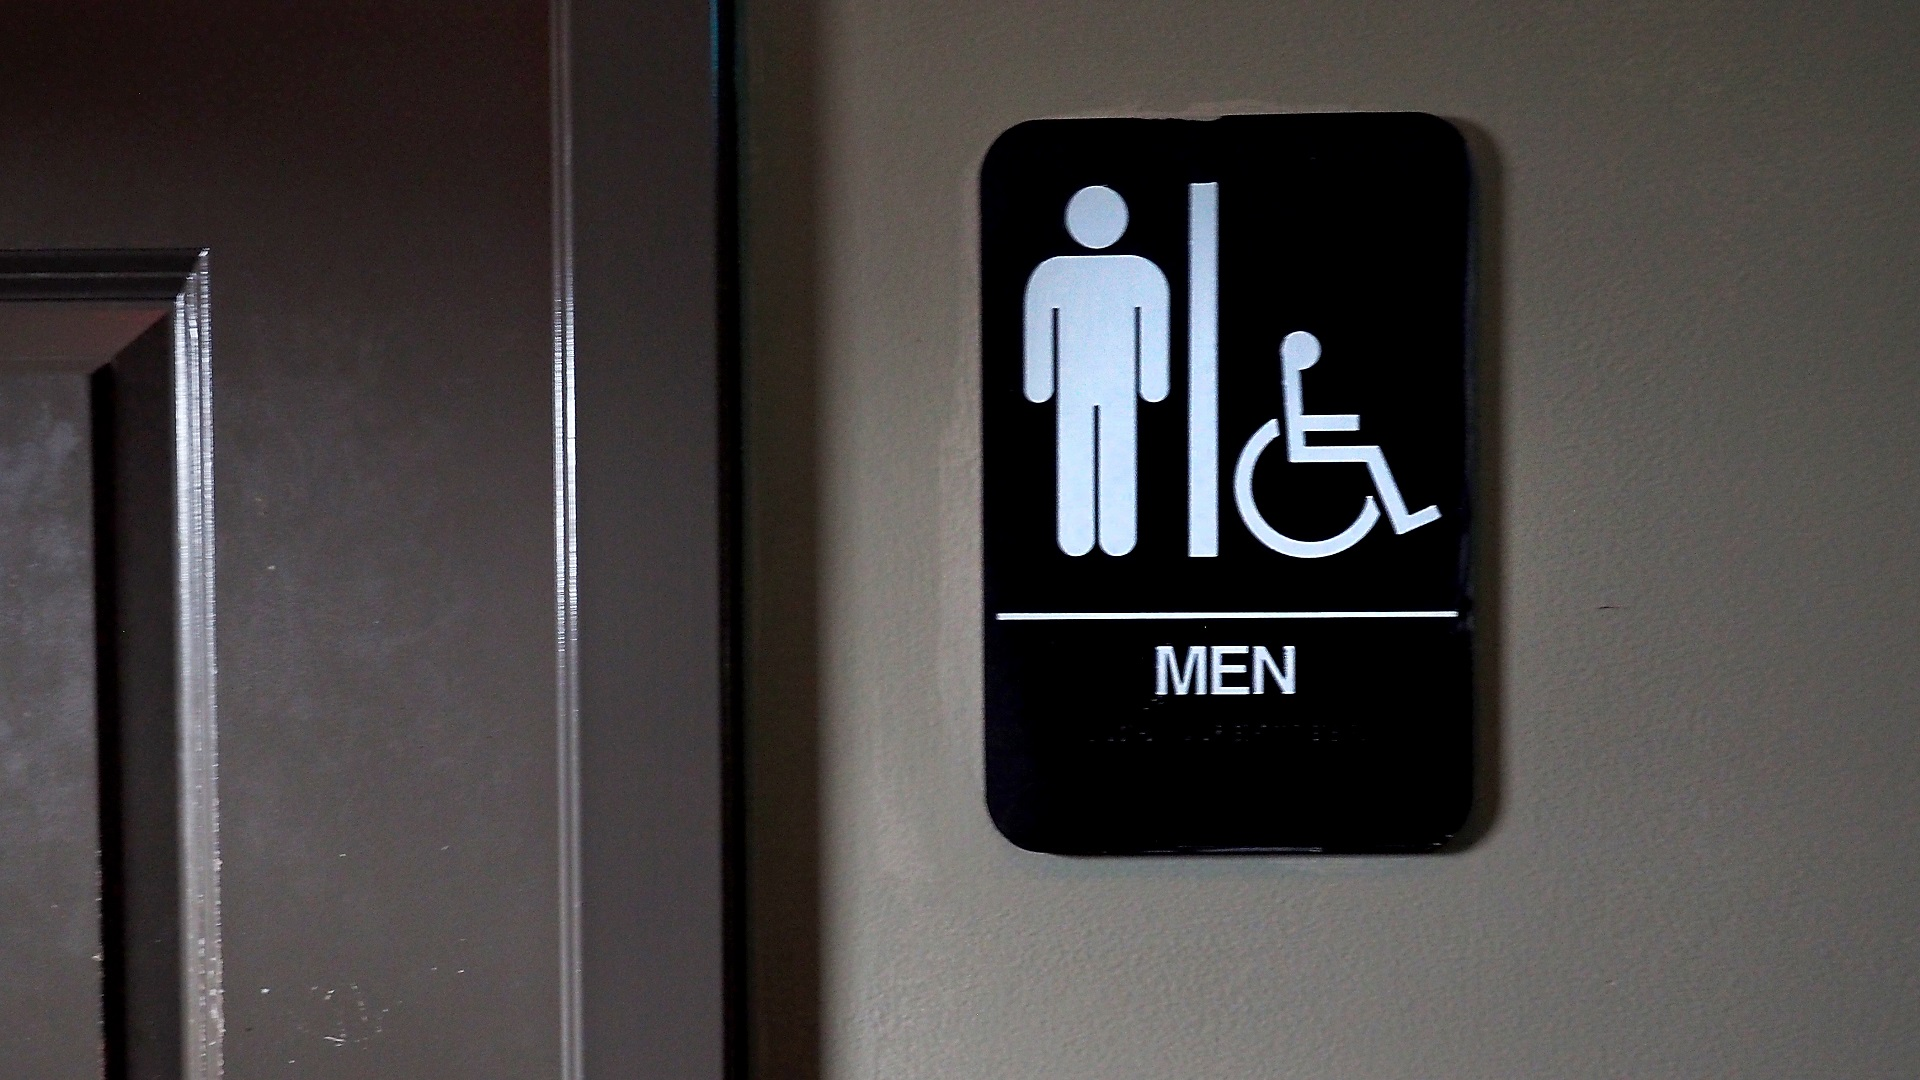 MEN'S BATHROOM